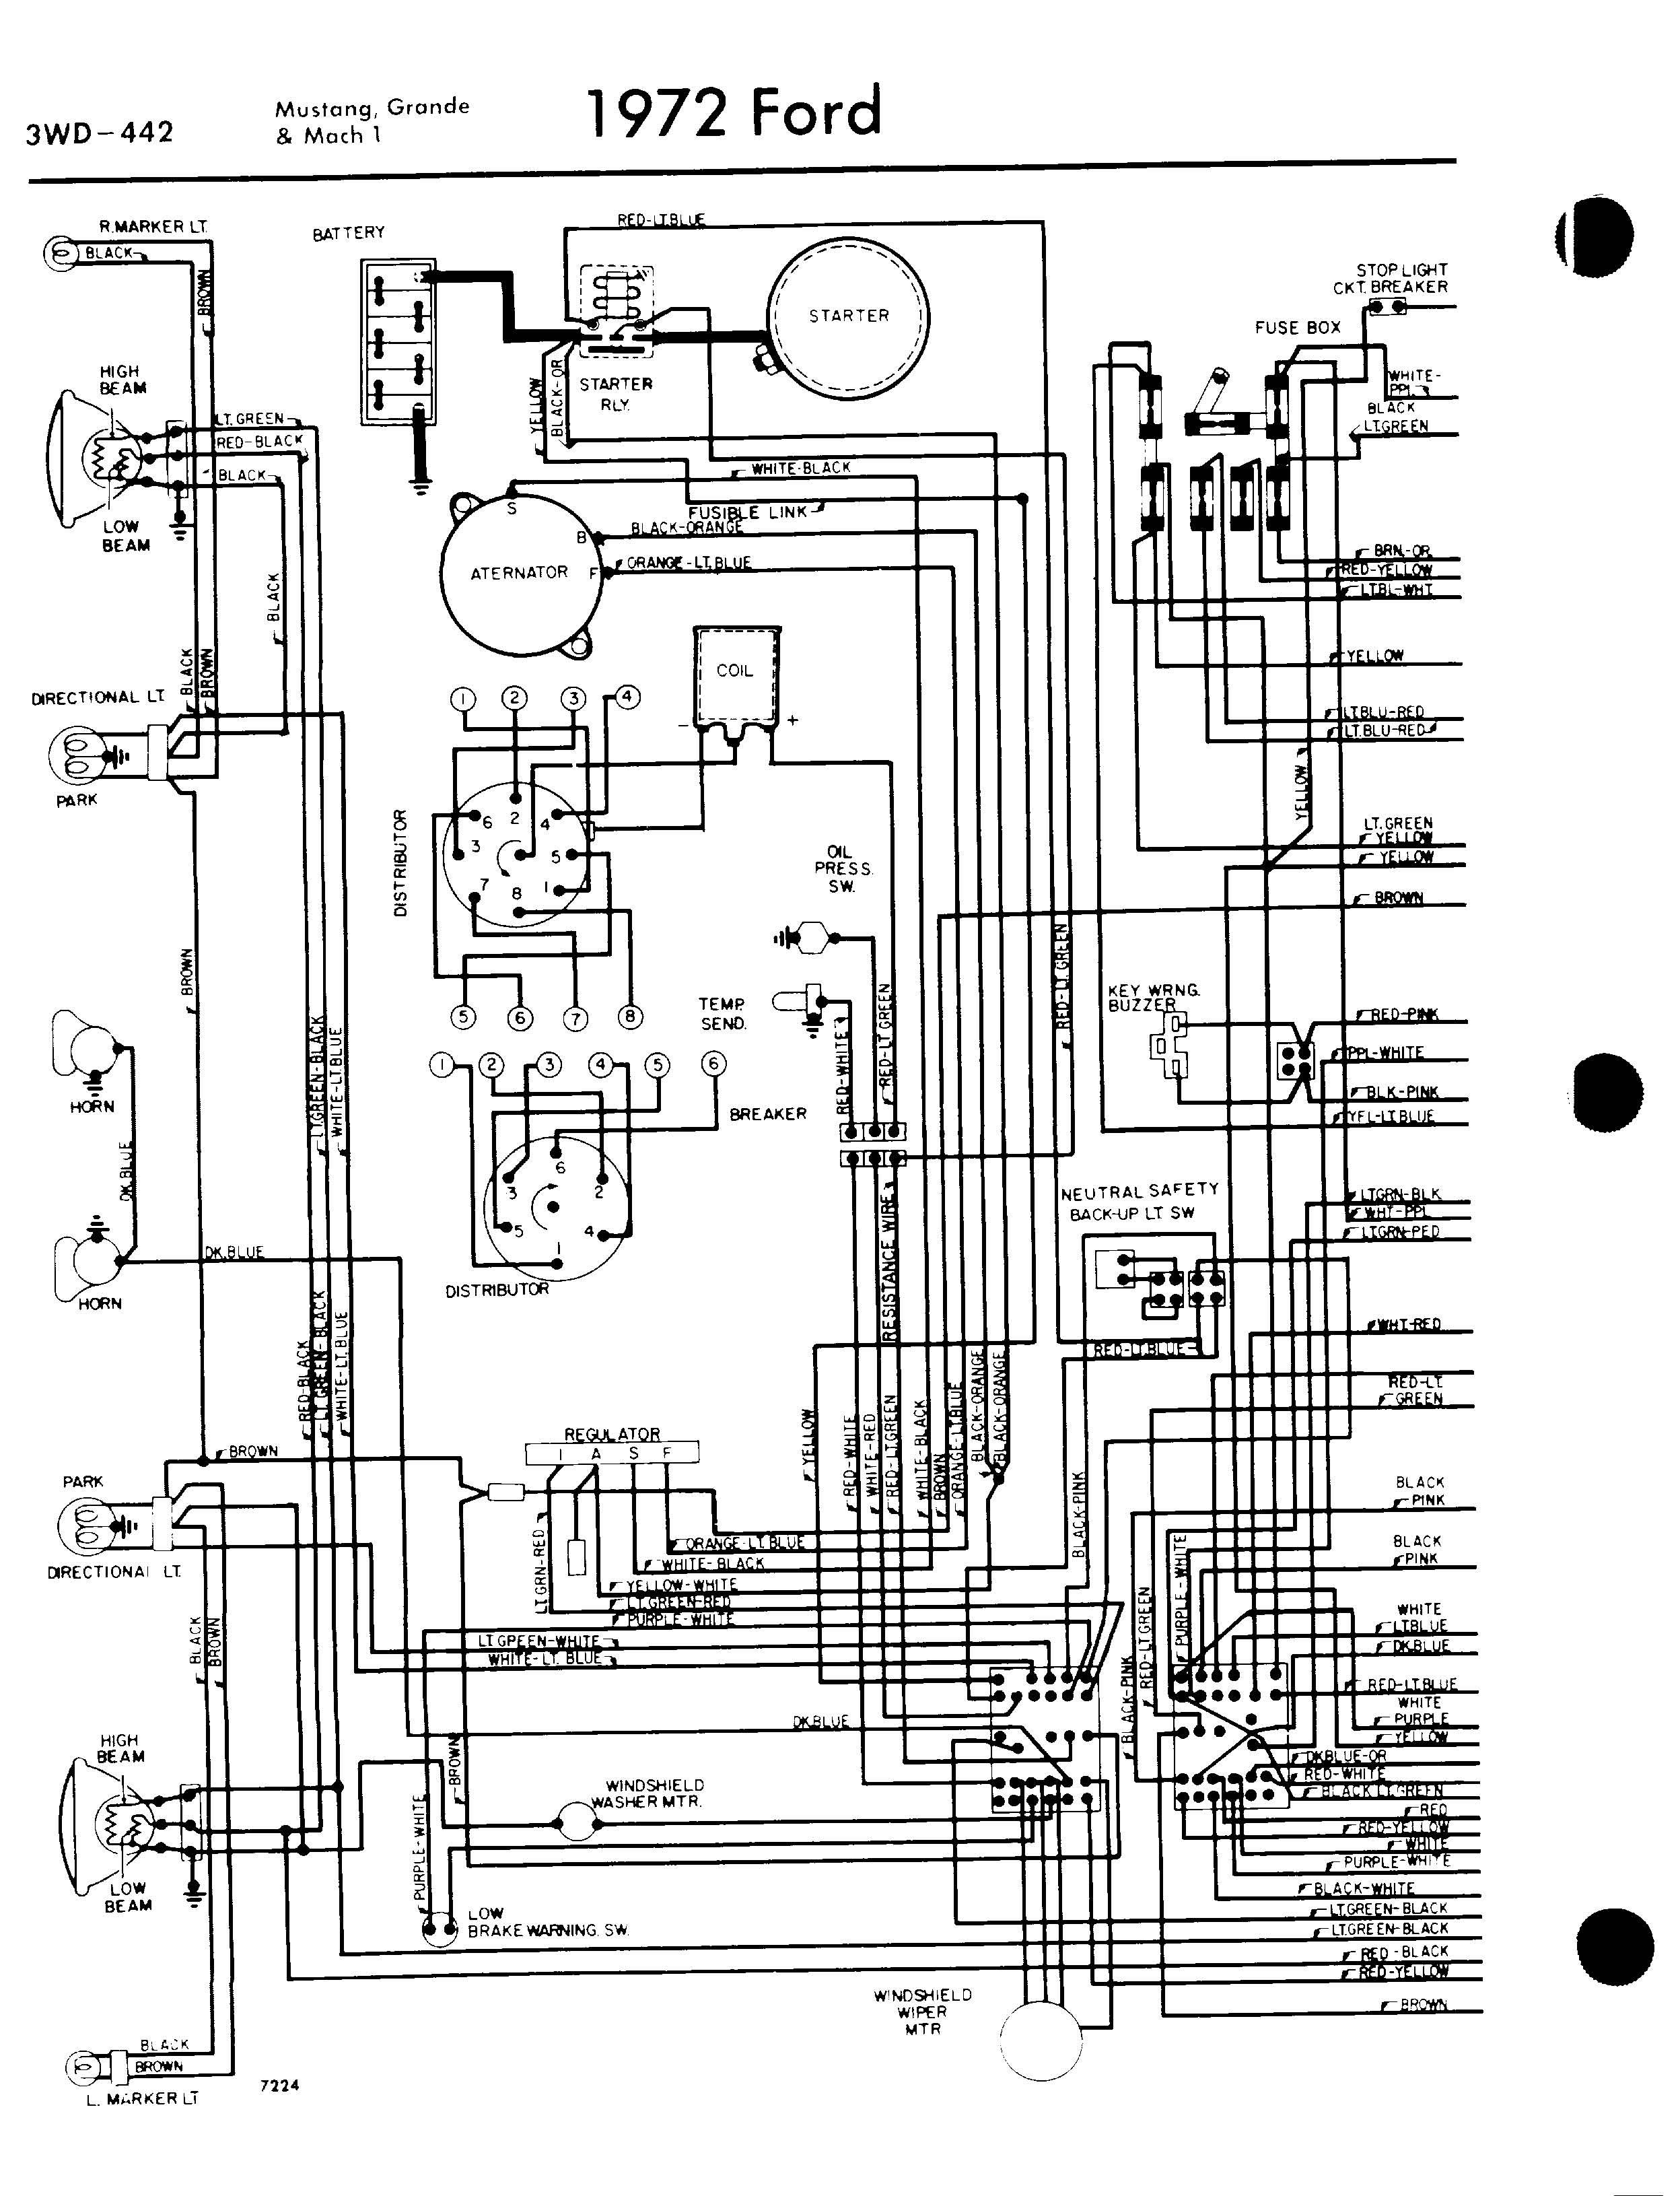 1969 Mustang Wiring Diagram - Wiring Diagram Data on stratocaster wiring diagram, soloist wiring diagram, taylor wiring diagram, gibson wiring diagram, electric wiring diagram, 12-string wiring diagram, broadcaster wiring diagram, telecaster template, hamer wiring diagram, telecaster control plate, esquire wiring diagram, cyclone wiring diagram, fender wiring diagram, harmony wiring diagram, guitar wiring diagram, dimarzio wiring diagram, humbucker wiring diagram, telecaster four way switch, les paul wiring diagram, mosrite wiring diagram,